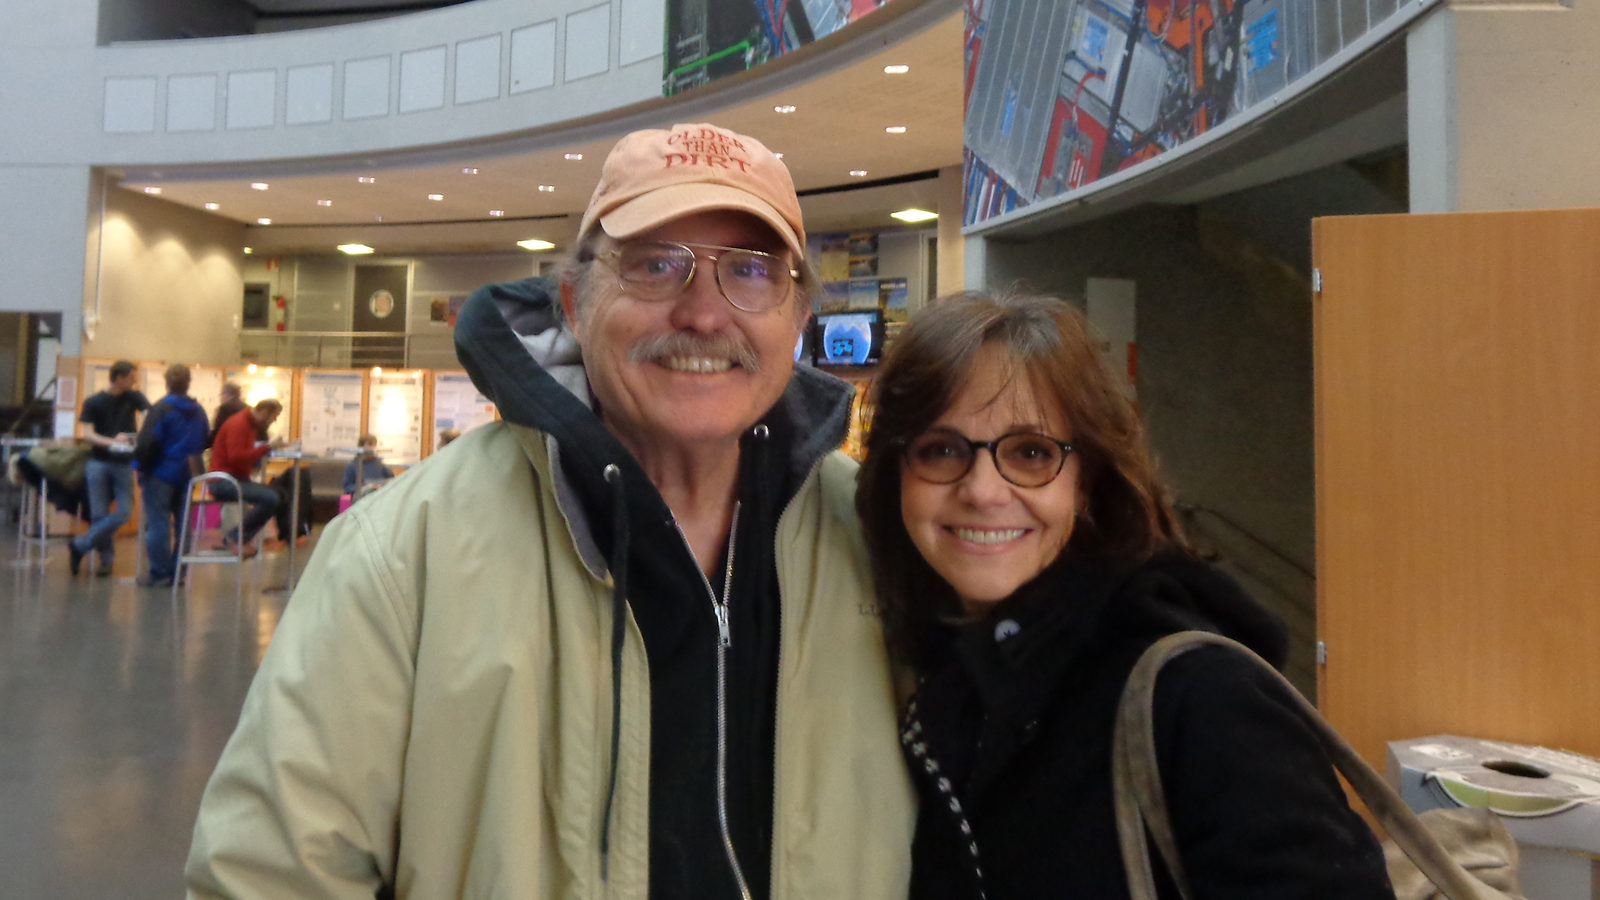 Photo: Rick and Sally Field